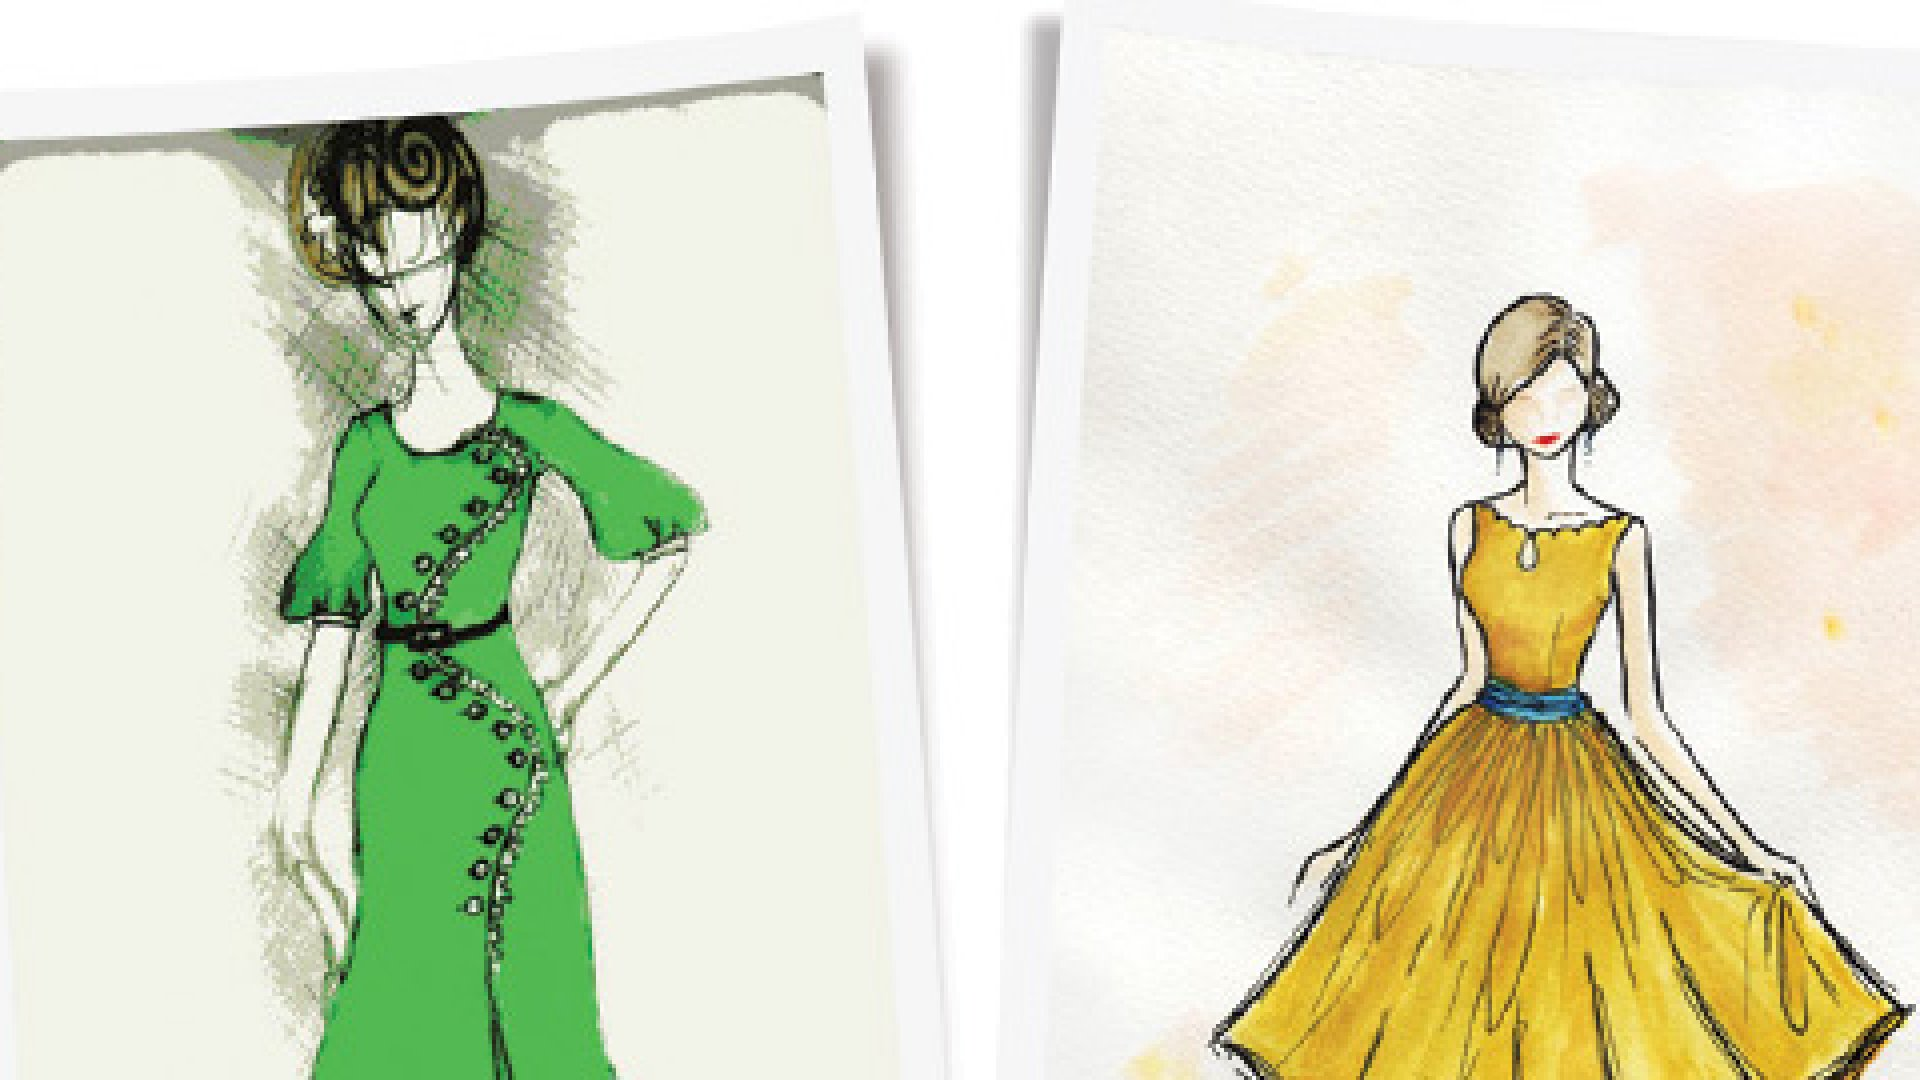 Modcloth: Getting Customers to Design Their Own Clothes